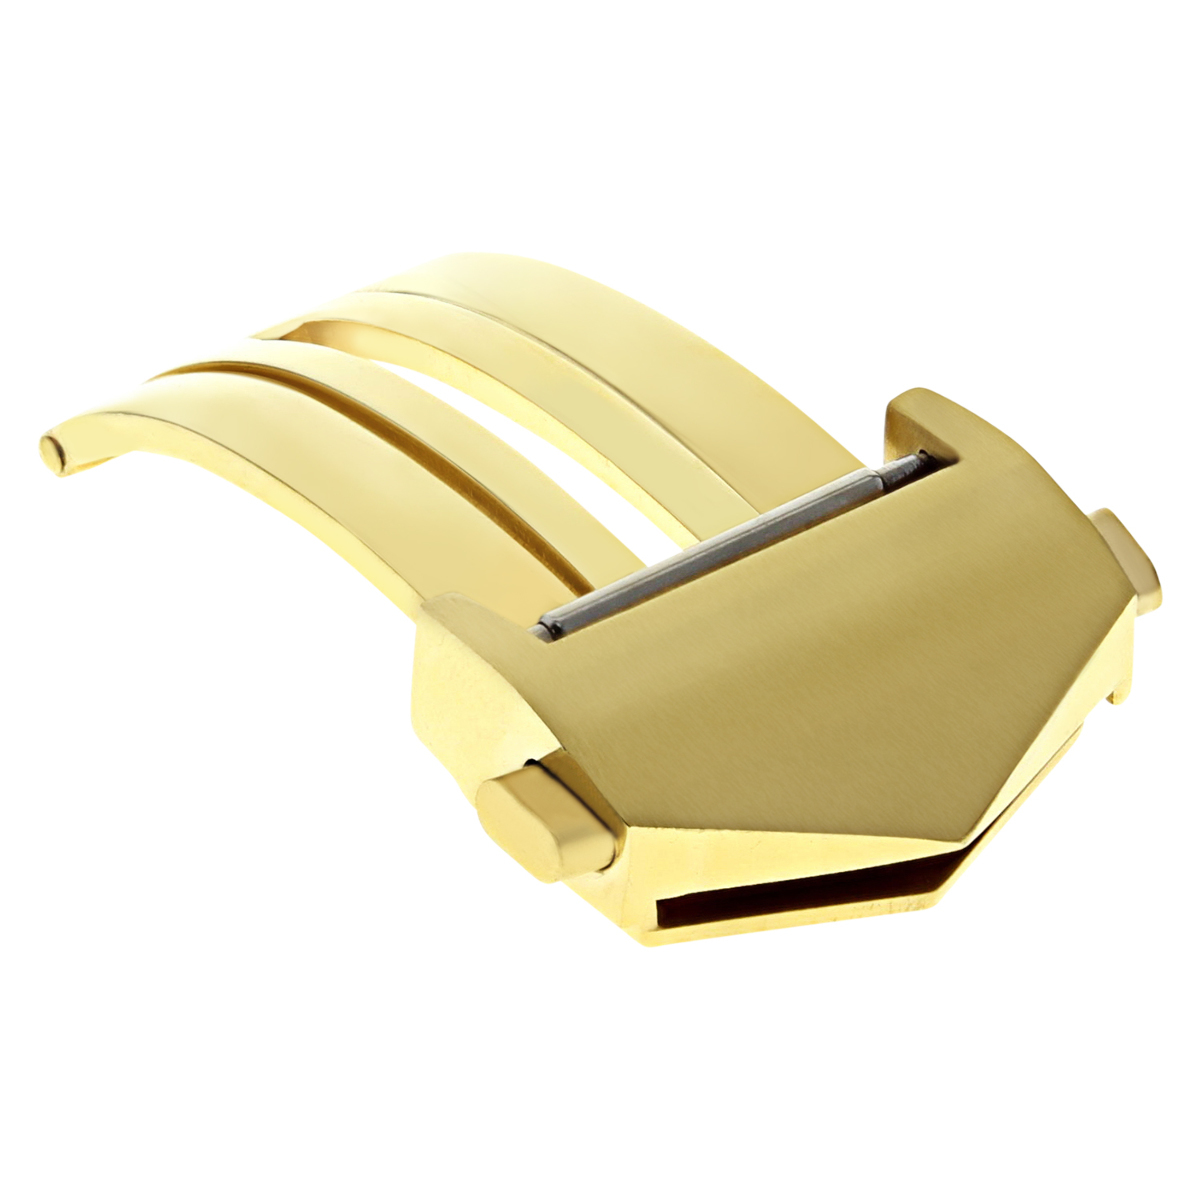 FOR LEATHER BAND RUBBER STRAP FOR TAG HEUER CARRERA MONACO CLASP 18/20 GOLD